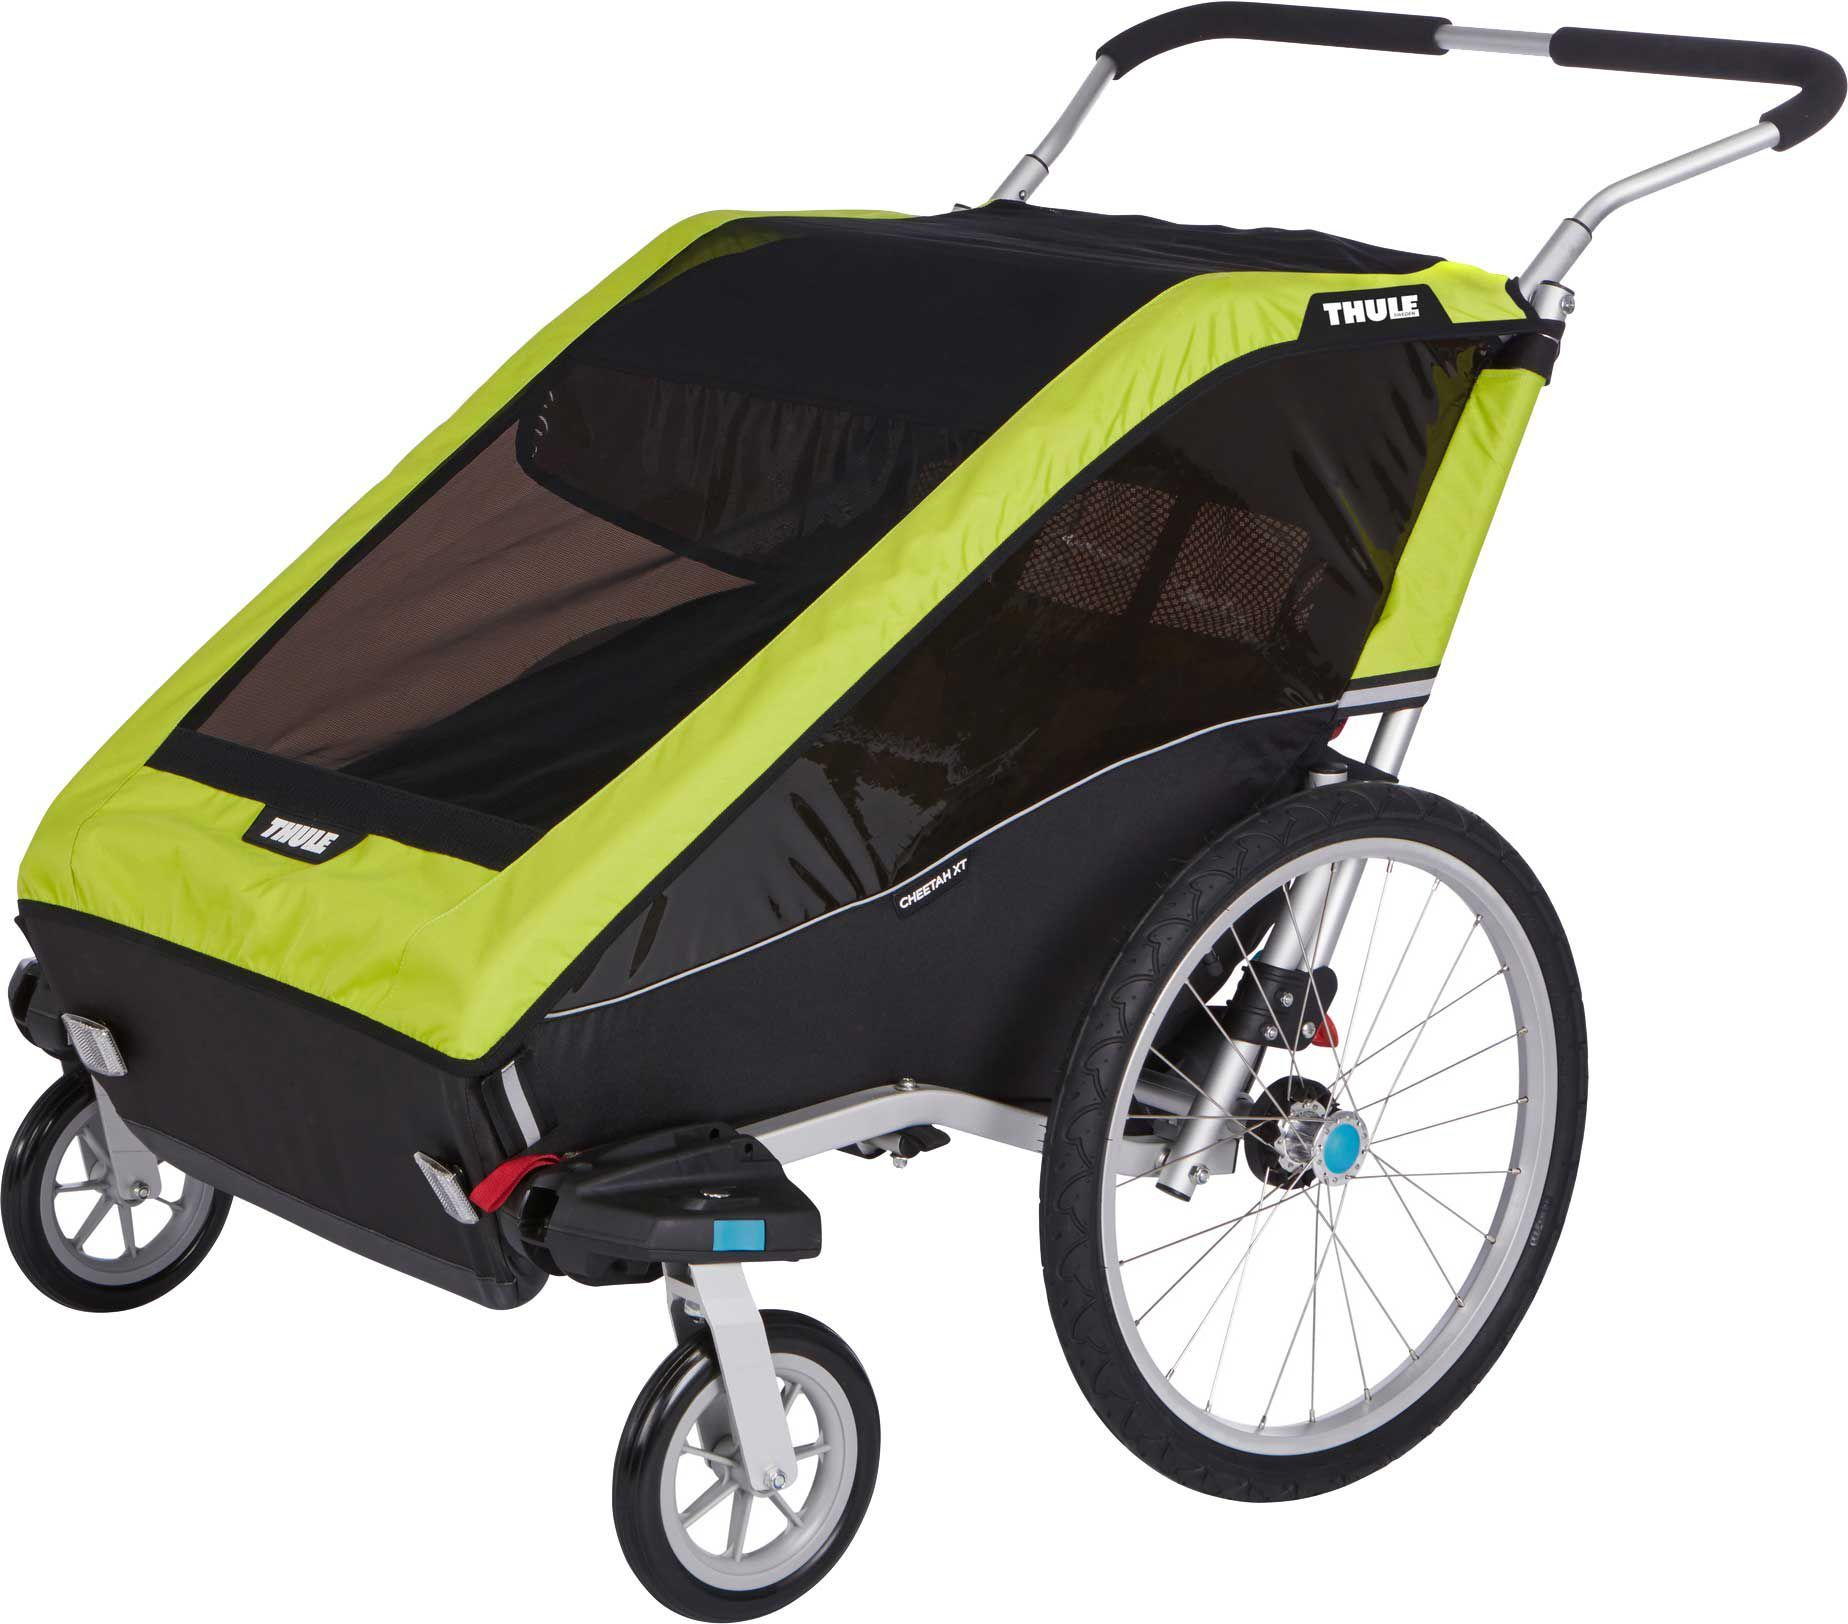 Thule Chariot Cheetah XT 2 Double Bike Trailer and